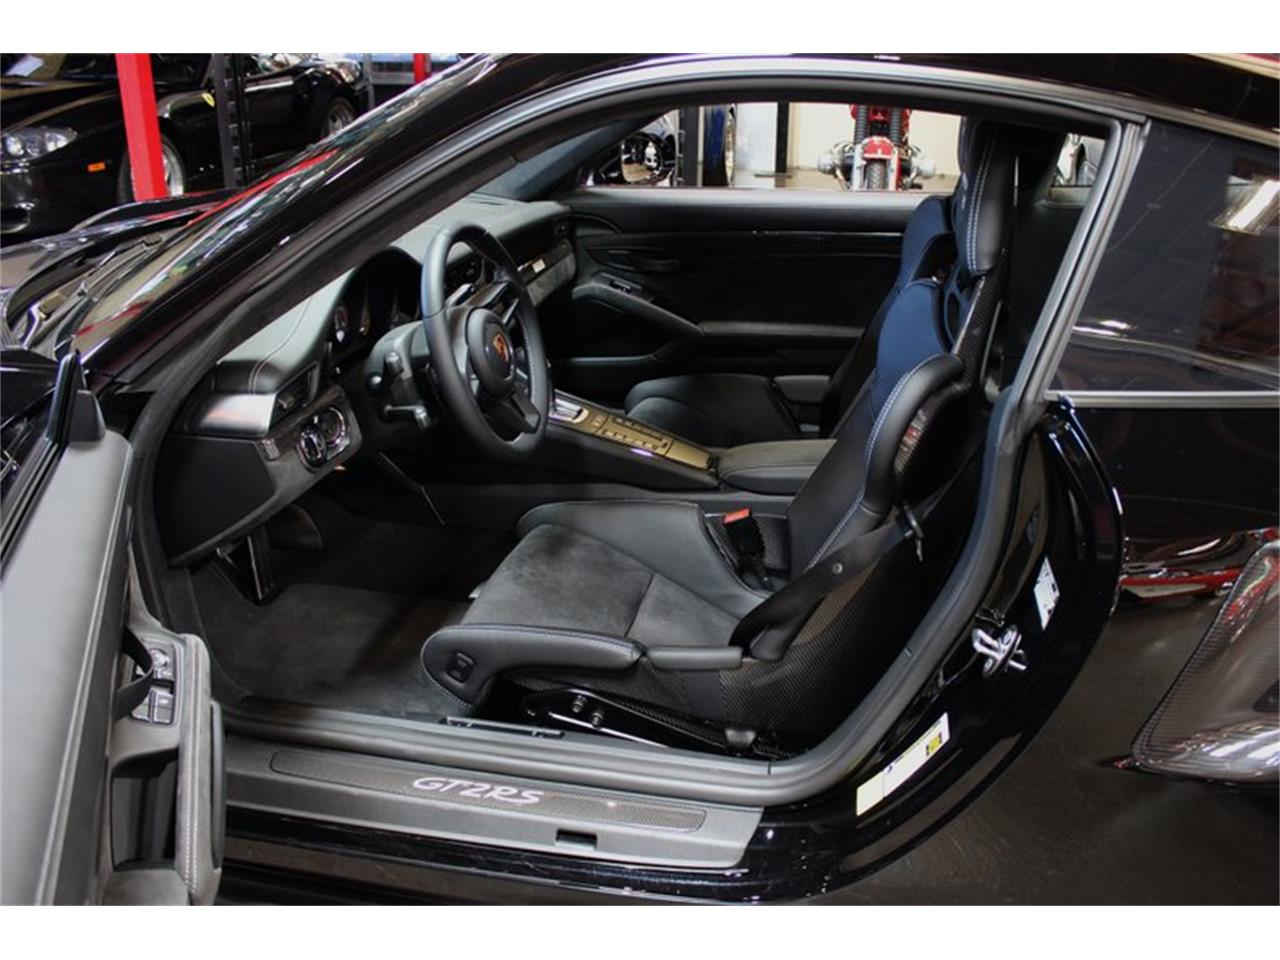 Large Picture of 2018 Porsche 911 located in California - $369,995.00 - PW1G